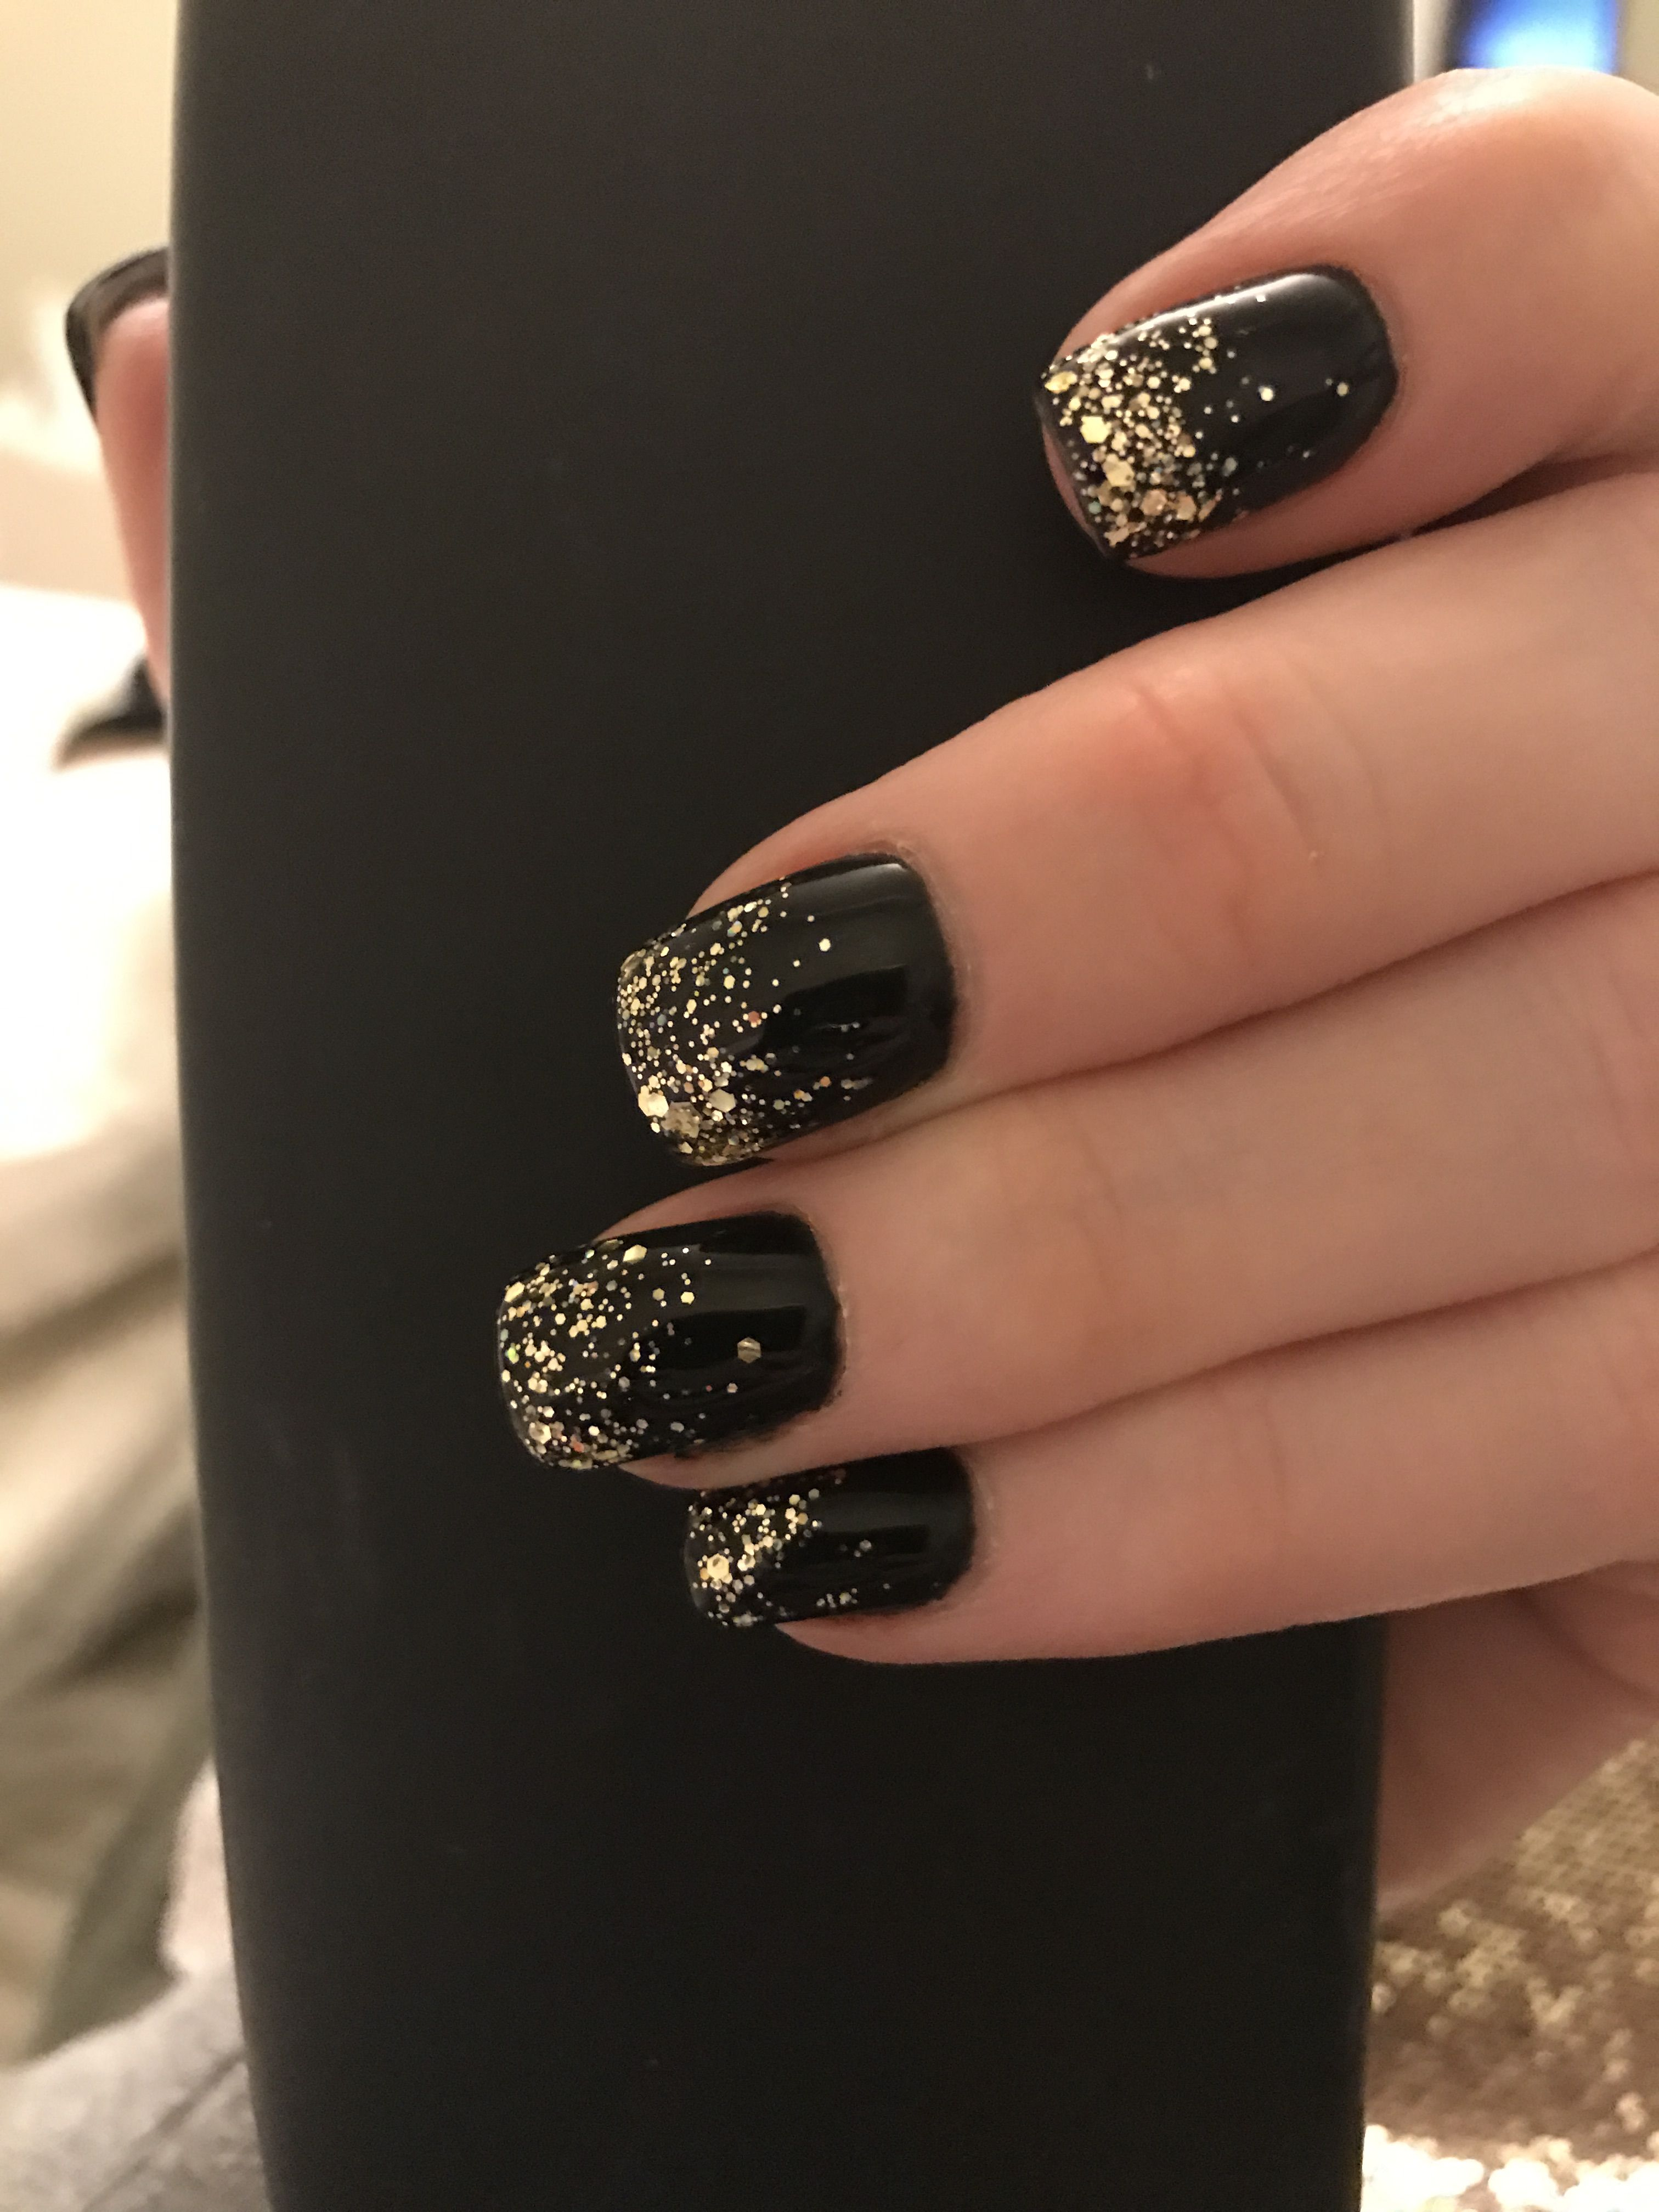 Black polish with gold tips that trickle down the nail